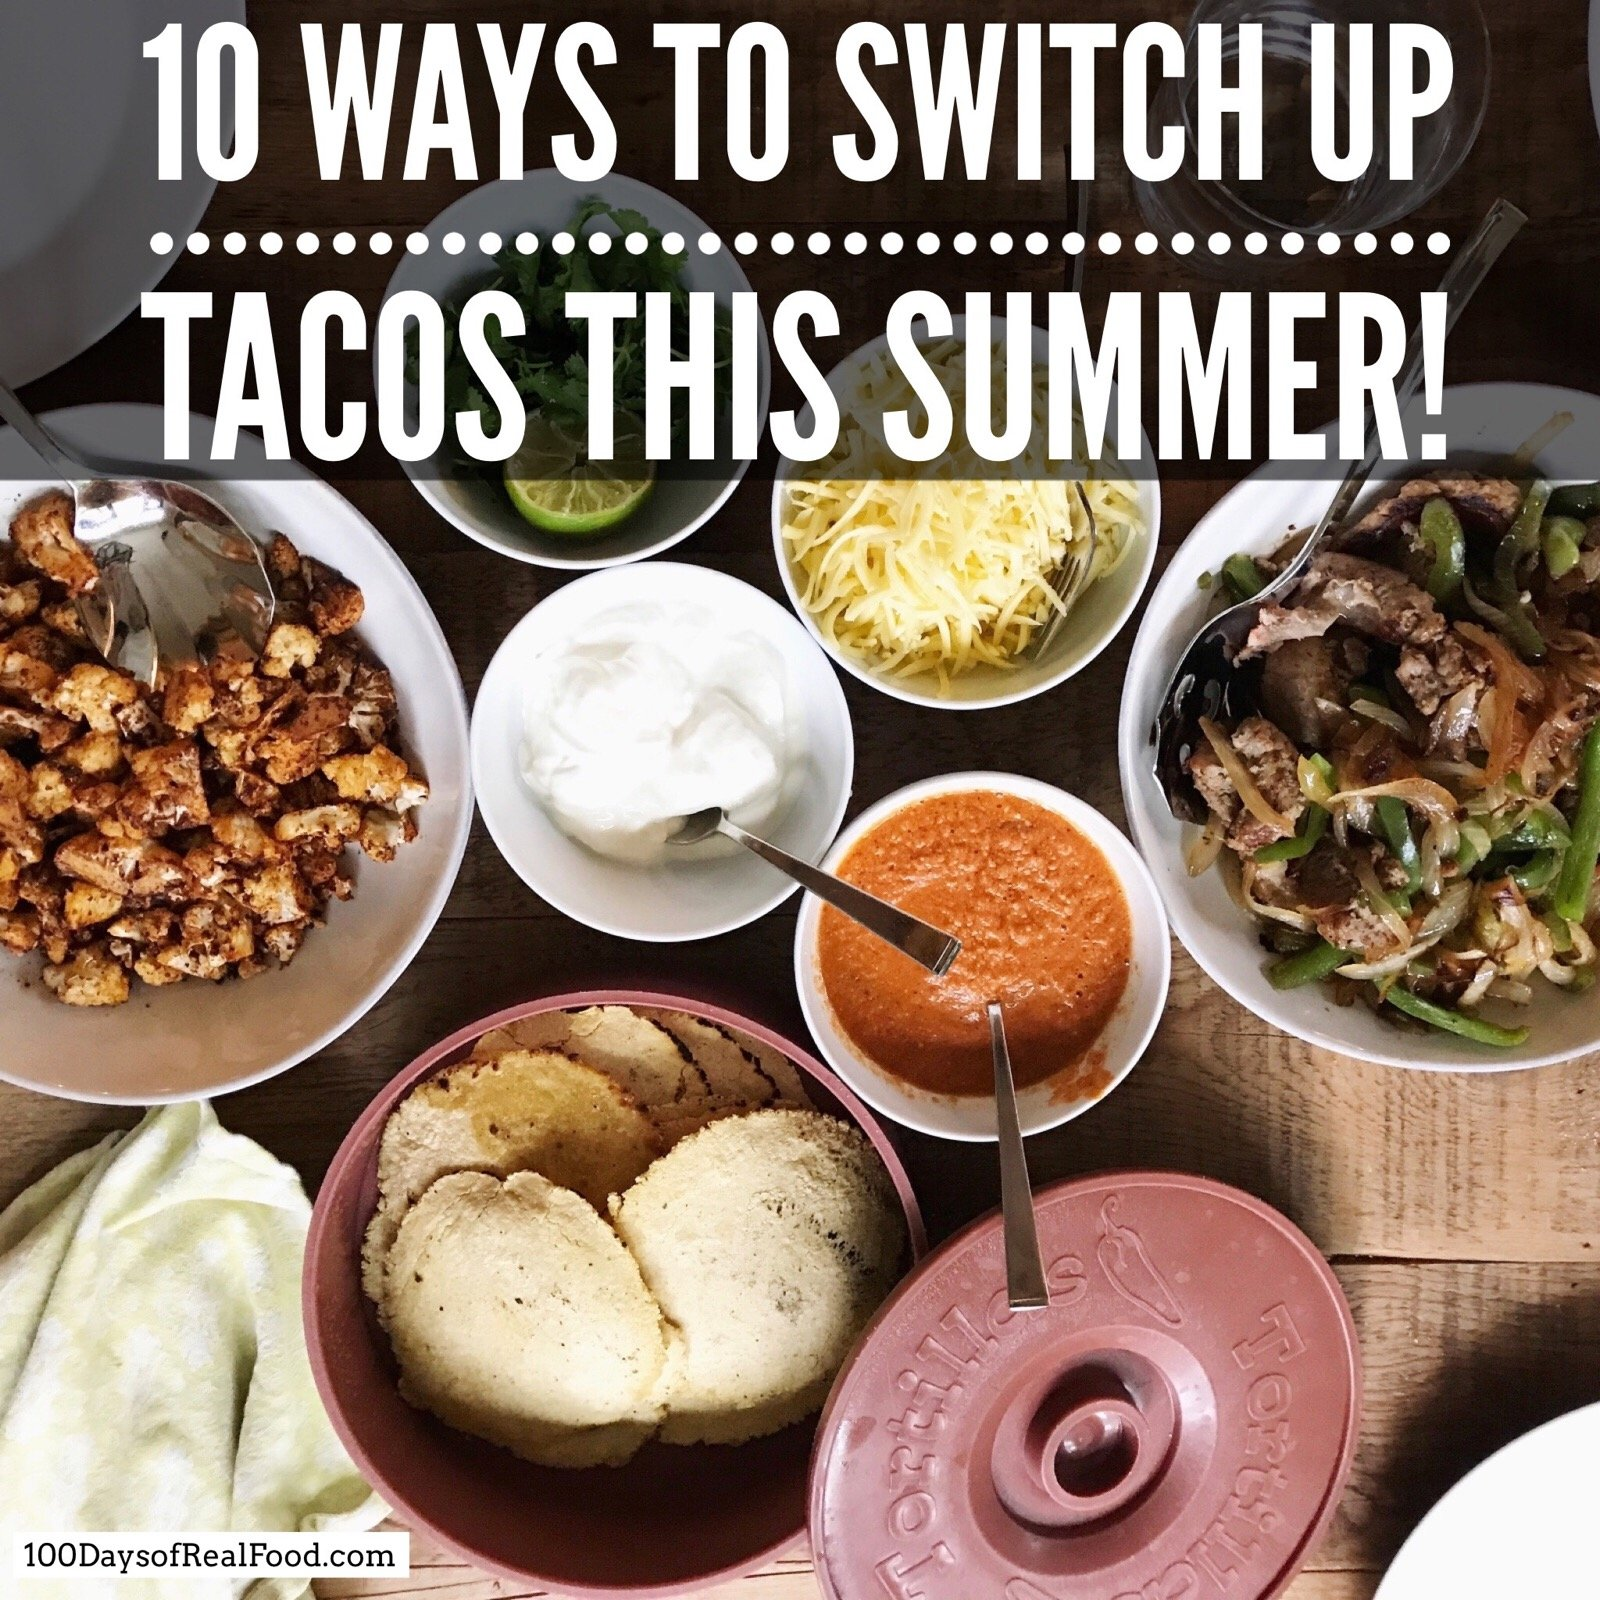 10 Ways to Switch Up Tacos This Summer on 100 Days of Real Food